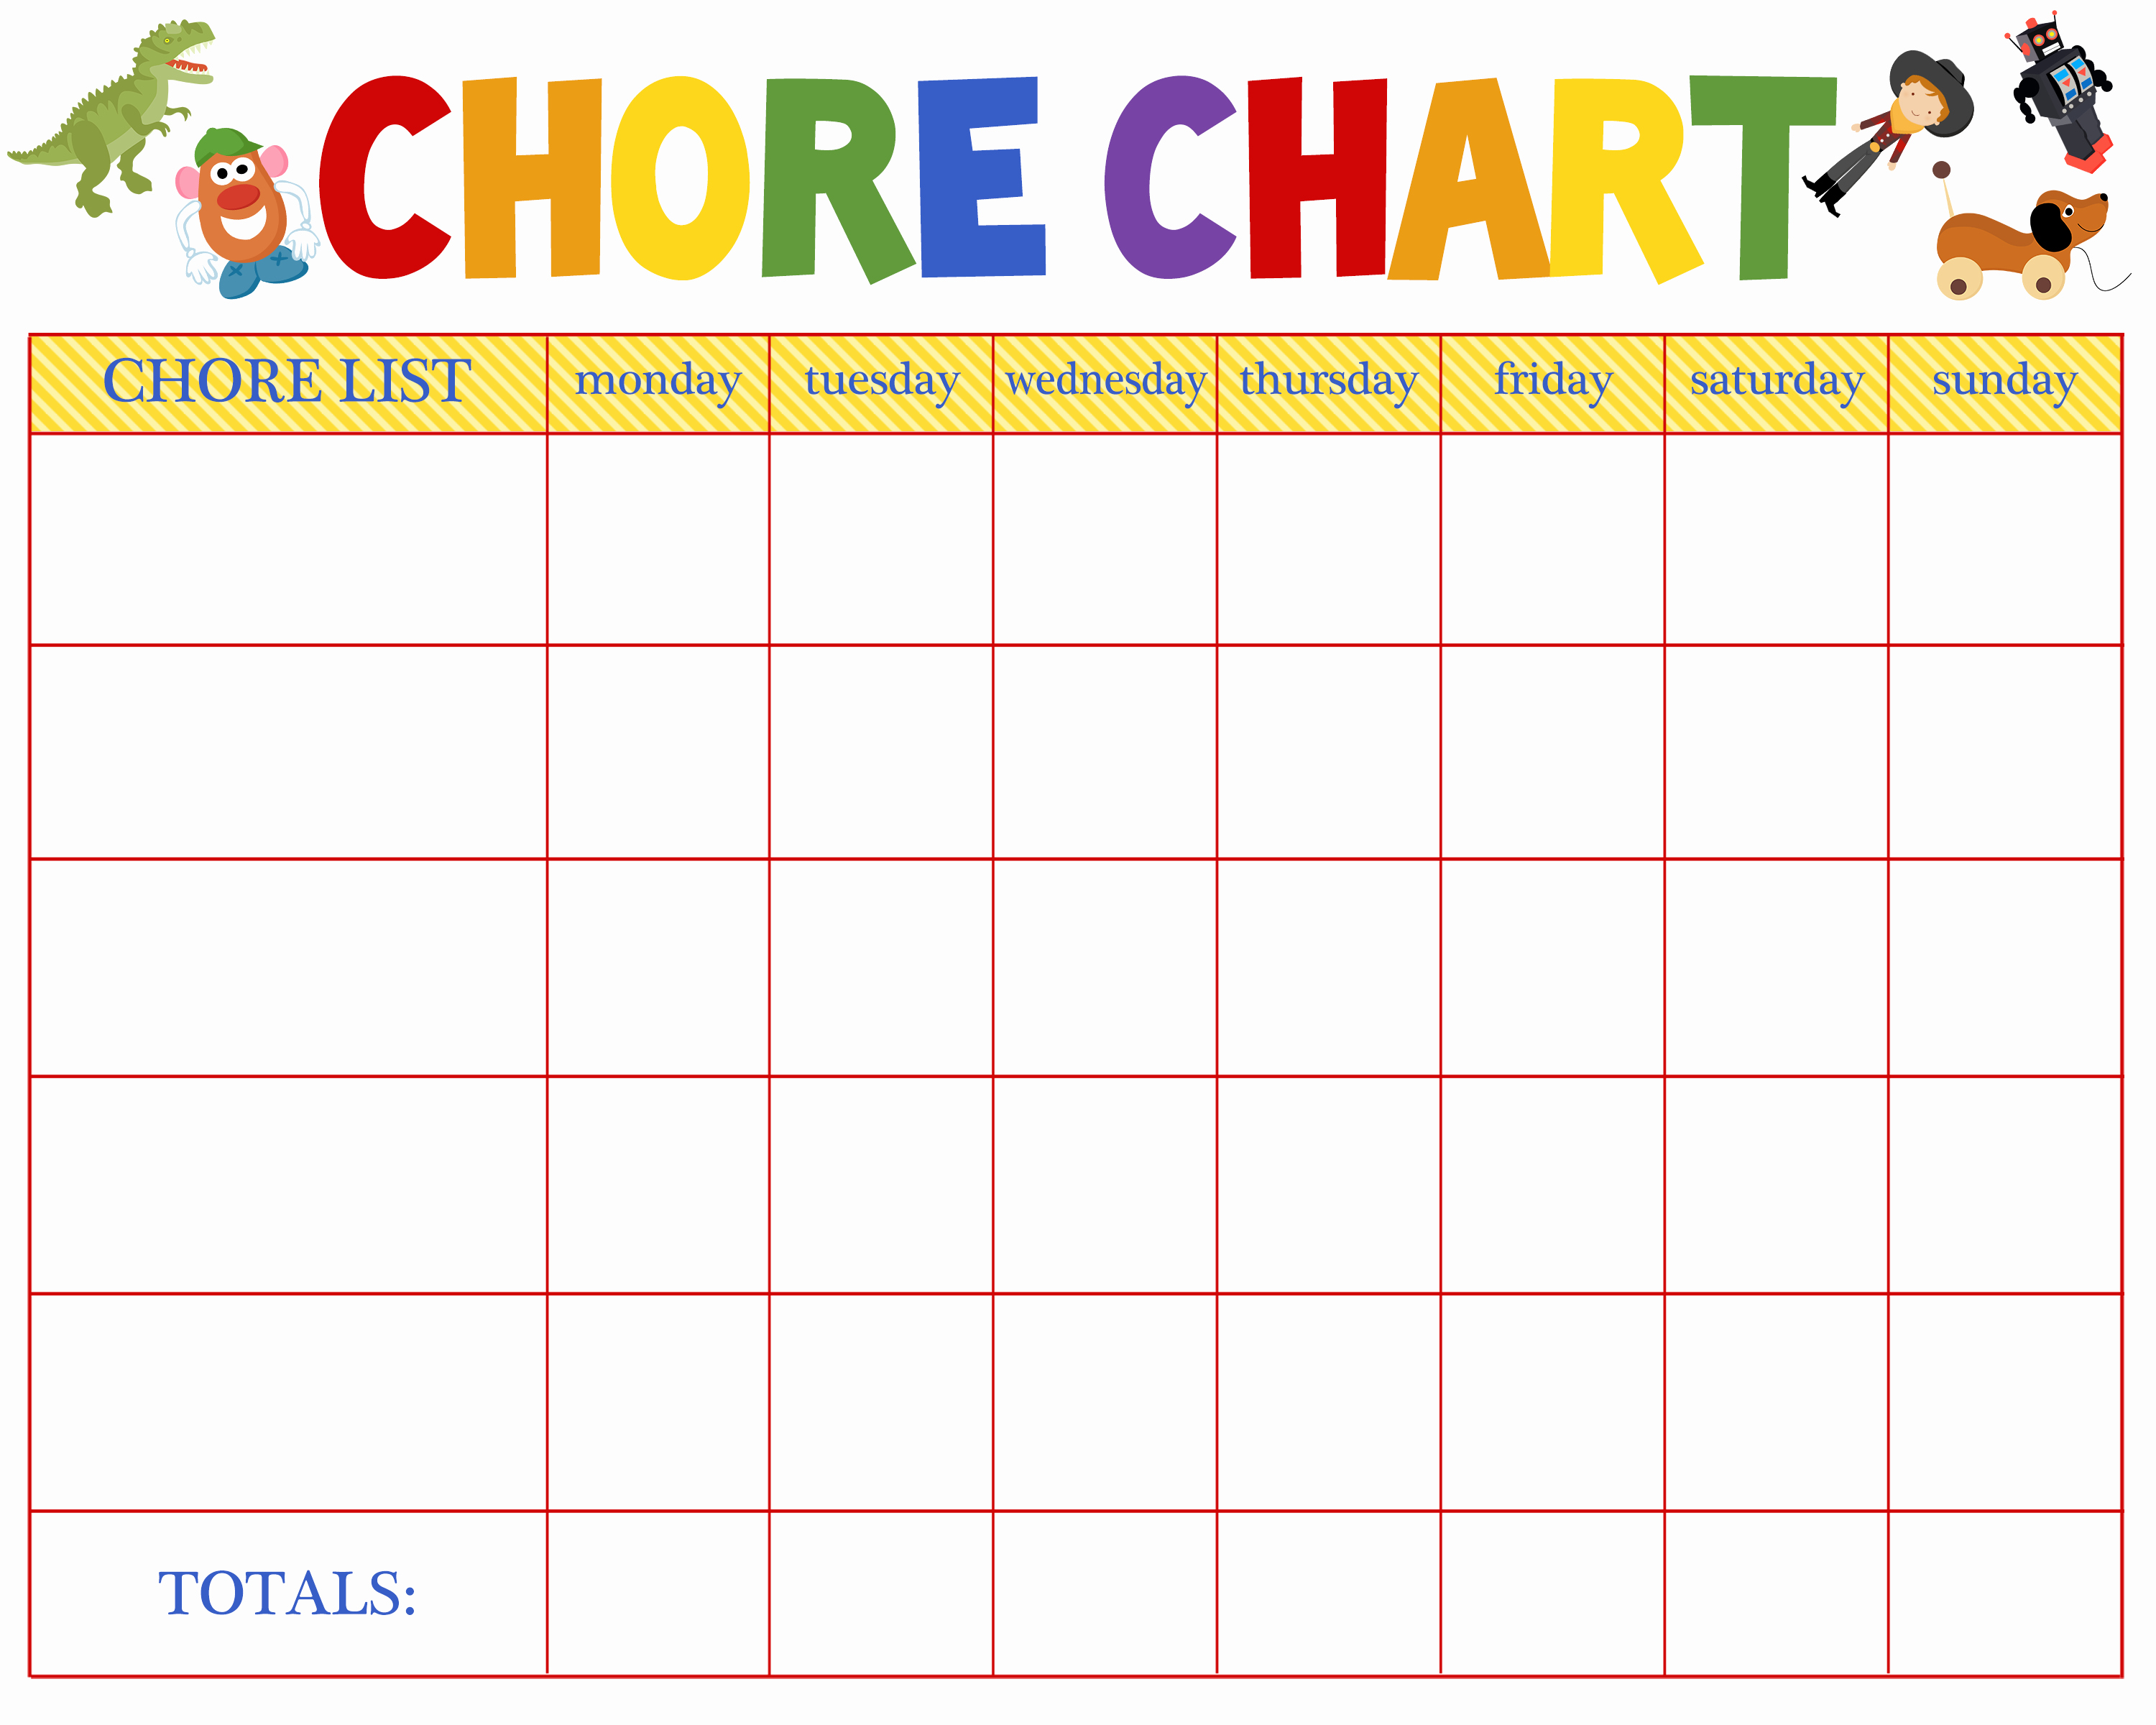 Chore Chart Template Word Lovely Free Behavioral Aid Printables Jumping Jax Designs